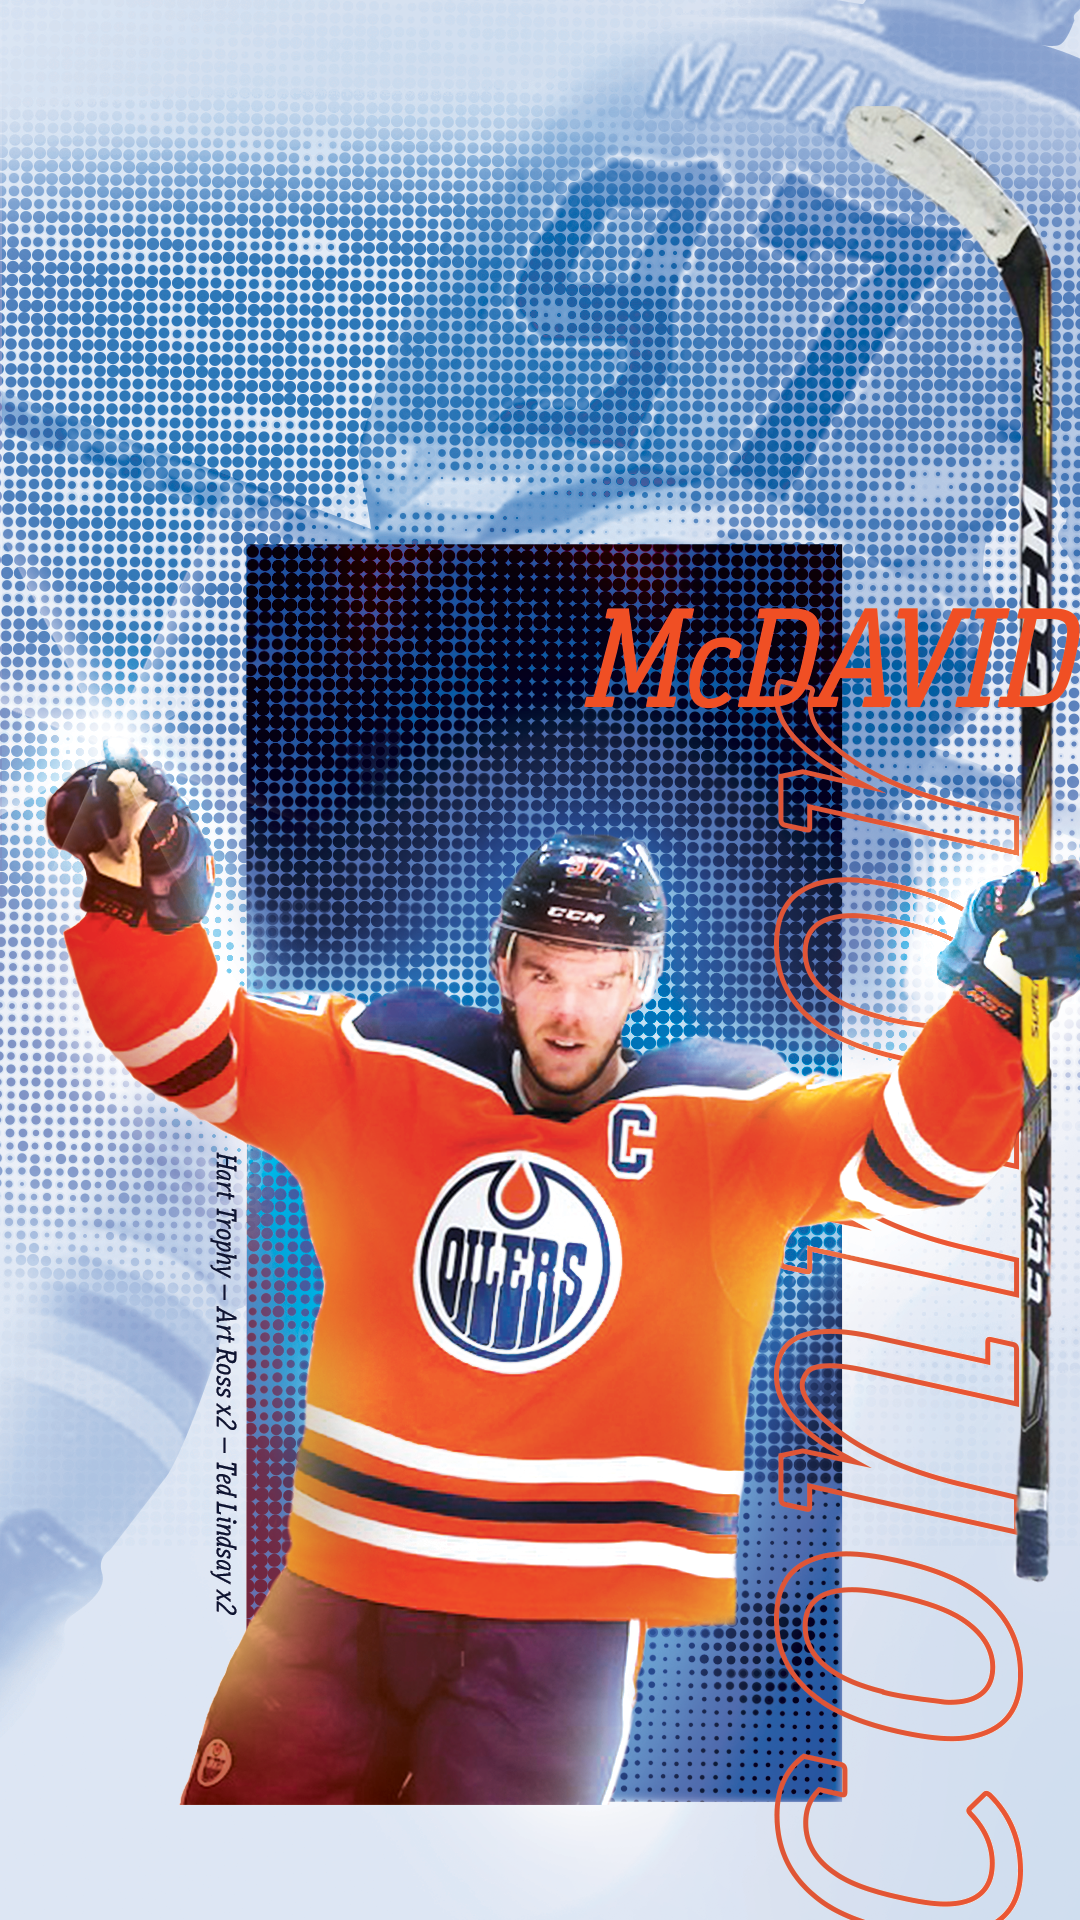 Wallpaper1_McDavid.png